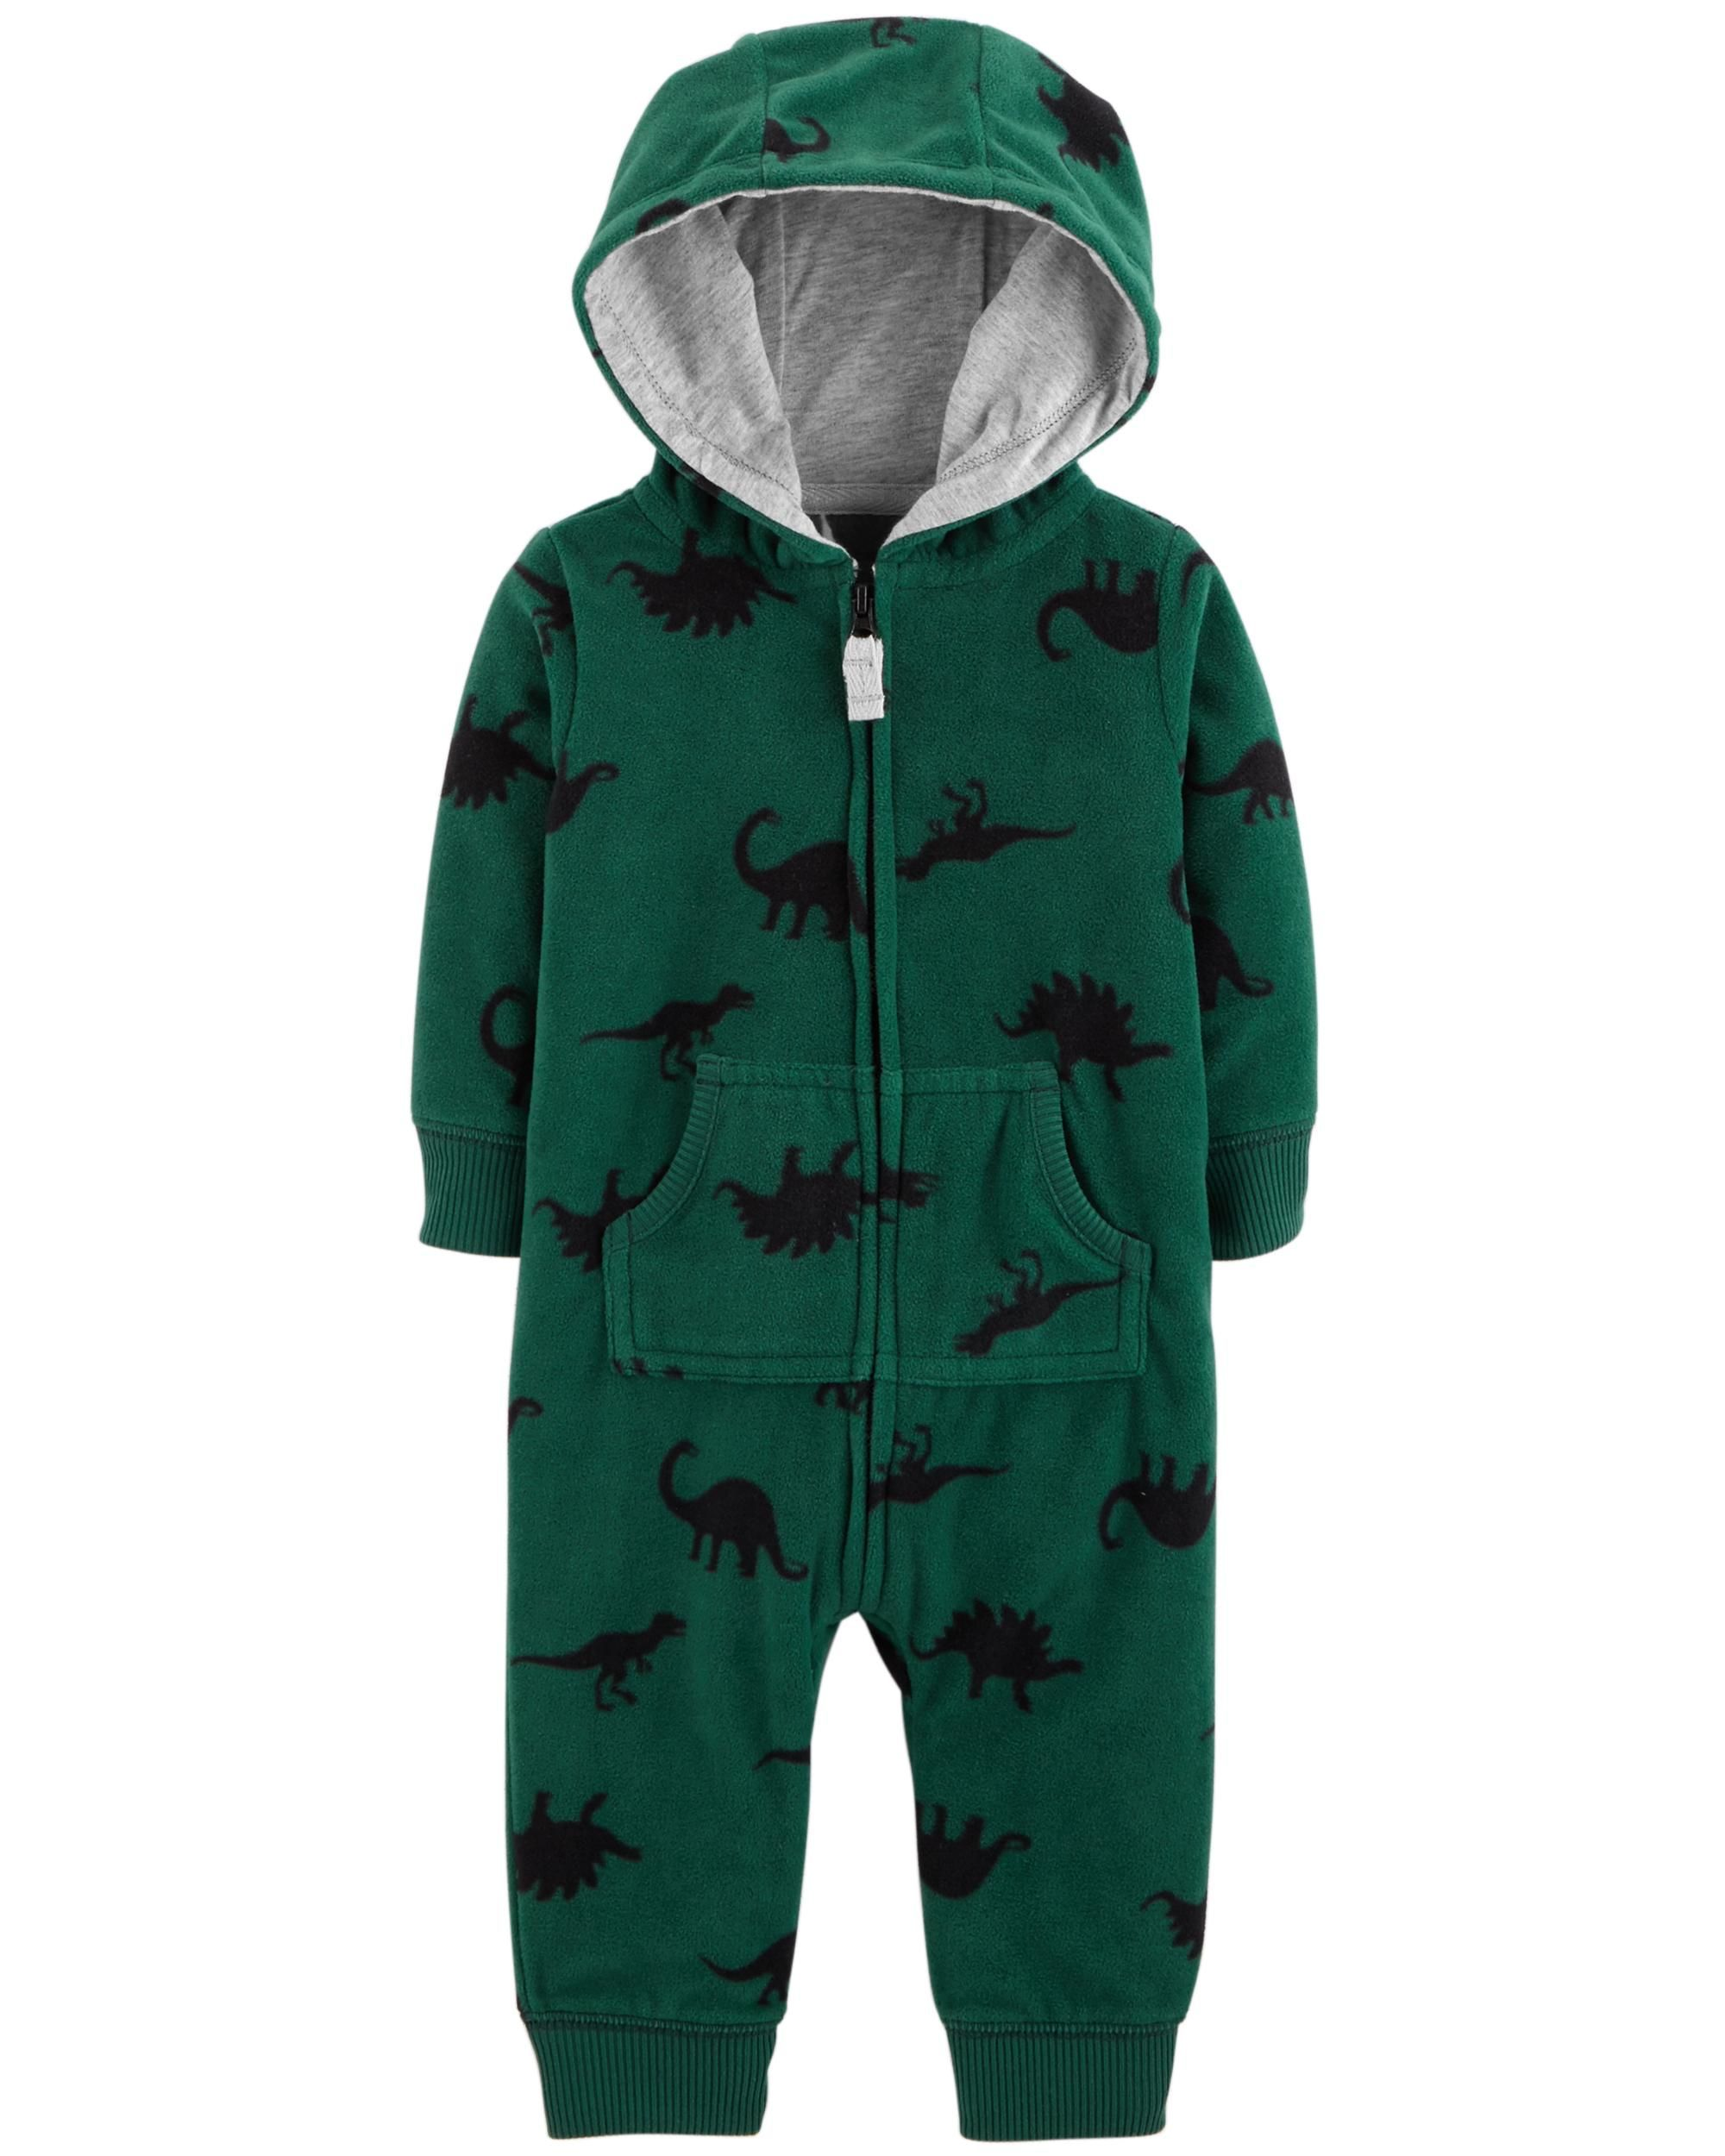 0b14bfa207b3 Dinosaur Hooded Fleece Jumpsuit